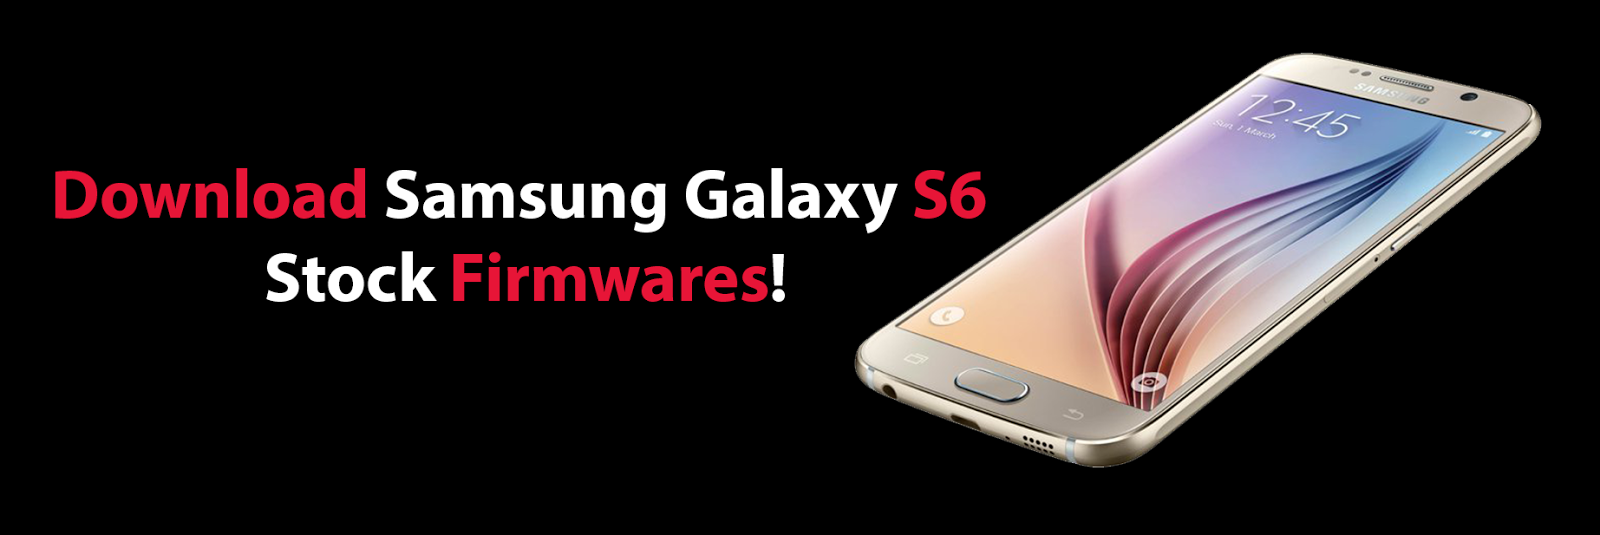 Galaxy S6 Stock Firmware! [Download] ~ AndroidRootz com   Source for